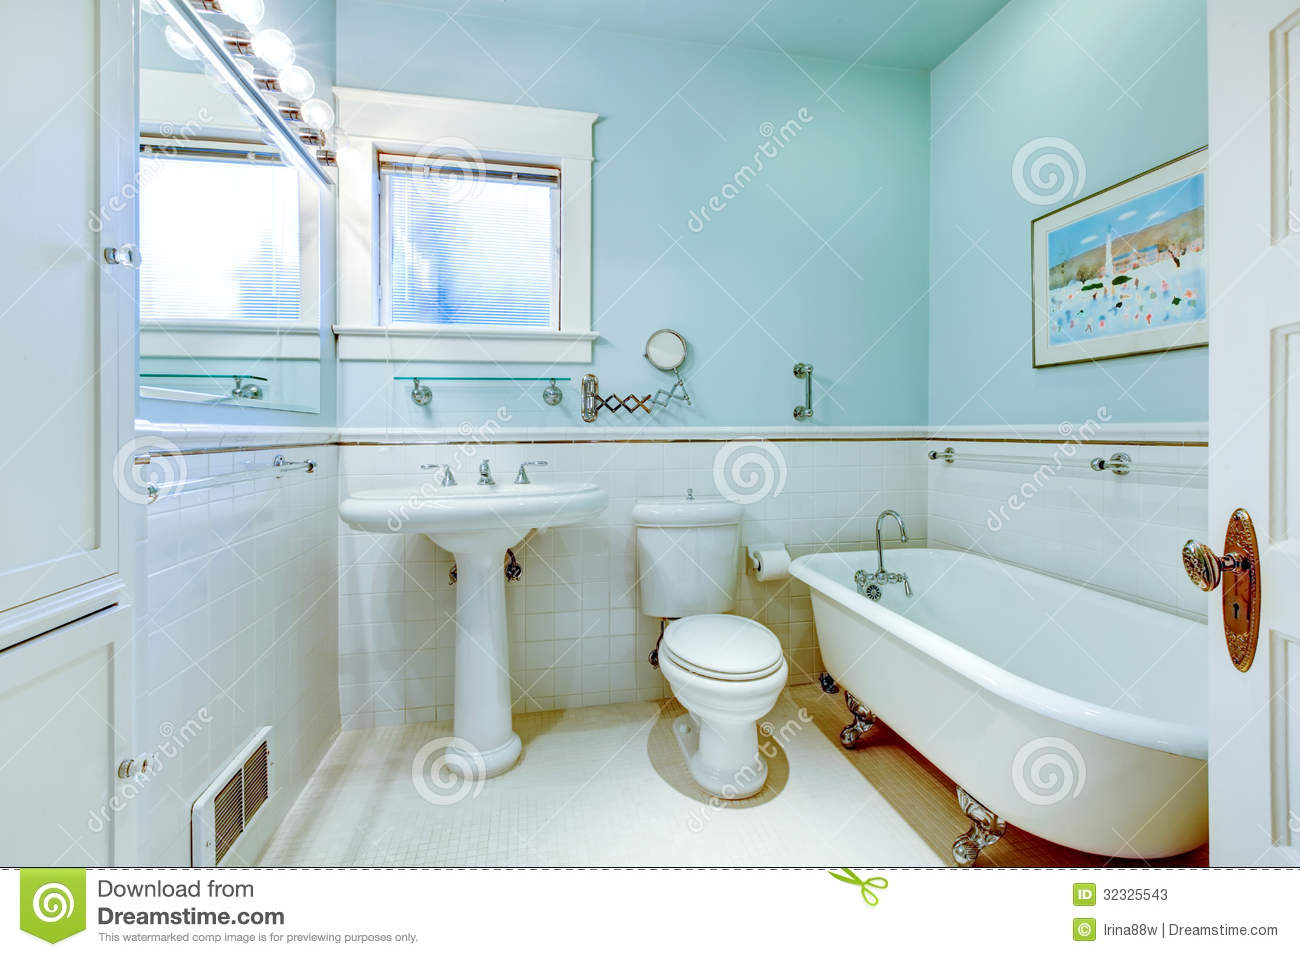 Cuartos De Baño Con Tina:Elegant Bathroom with White and Blues